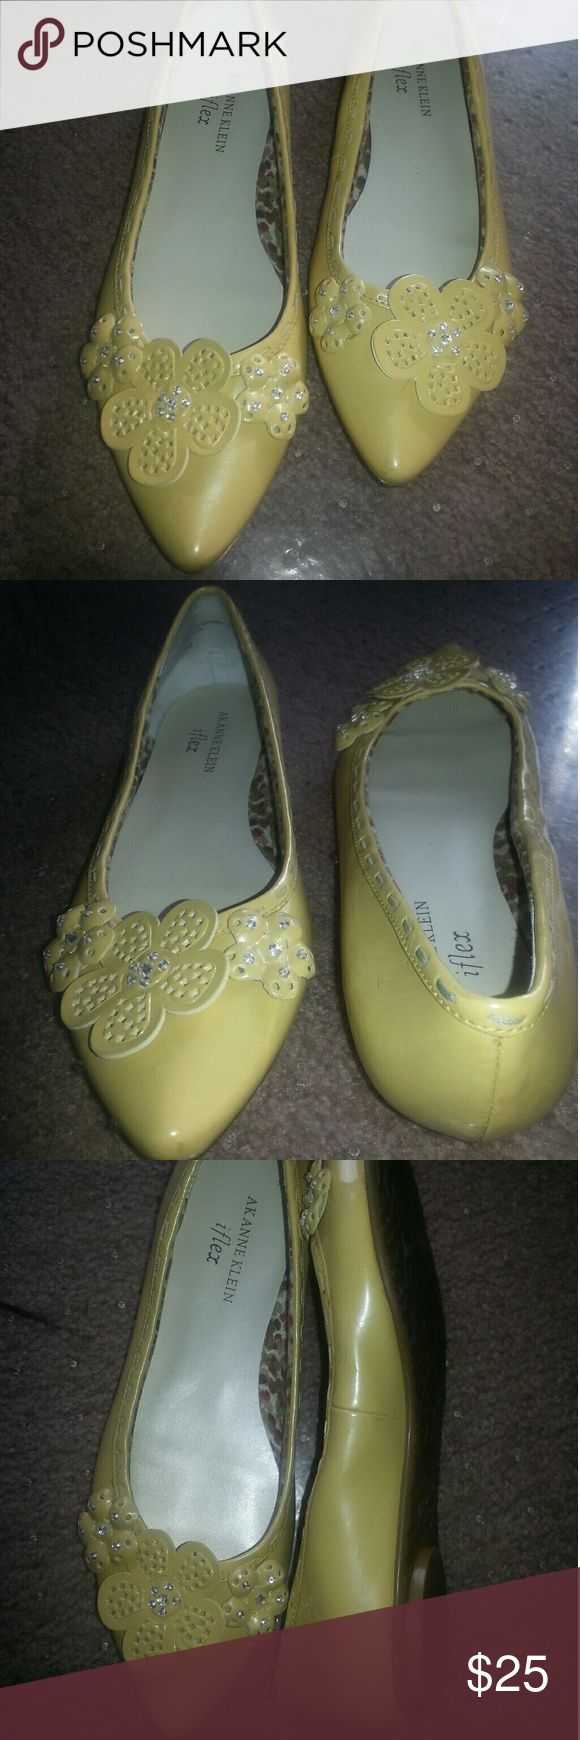 Flower power & comfort statement flats Outfit maker! Pale yellow AK flats with flower accents that sparkle. The iflex technology embedded in the soles of the shoes promote comfort while turning heads. (Pictures are true color, no filters) Anne Klein Shoes Flats & Loafers